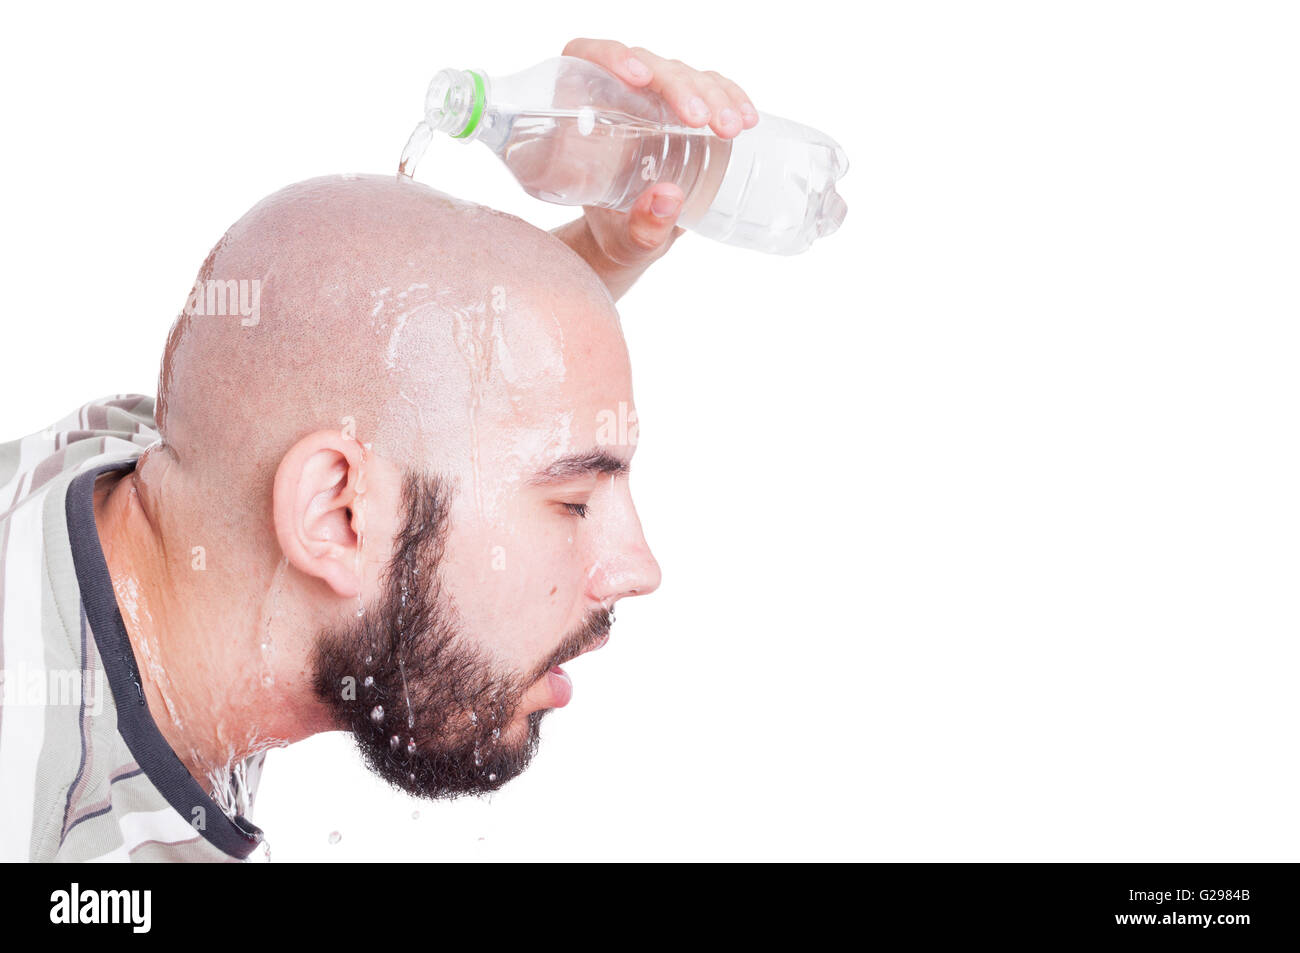 man refreshing or cooling his head with cold water in summer heat concept isolated on white - Stock Image